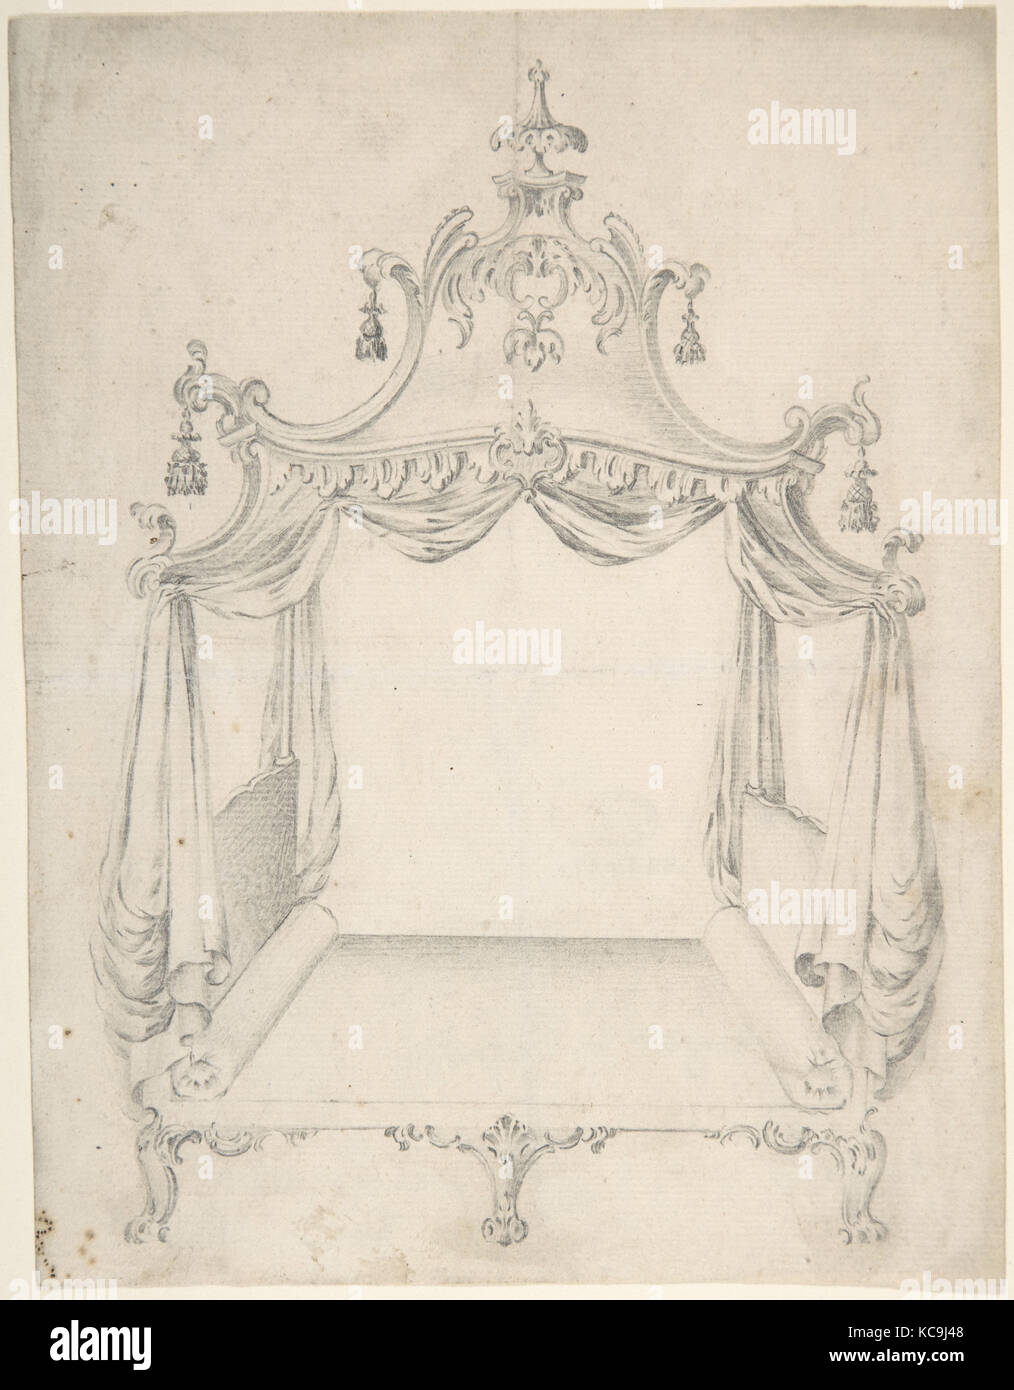 Design for a Four-poster Bed with Hangings, Anonymous, British, 18th century - Stock Image